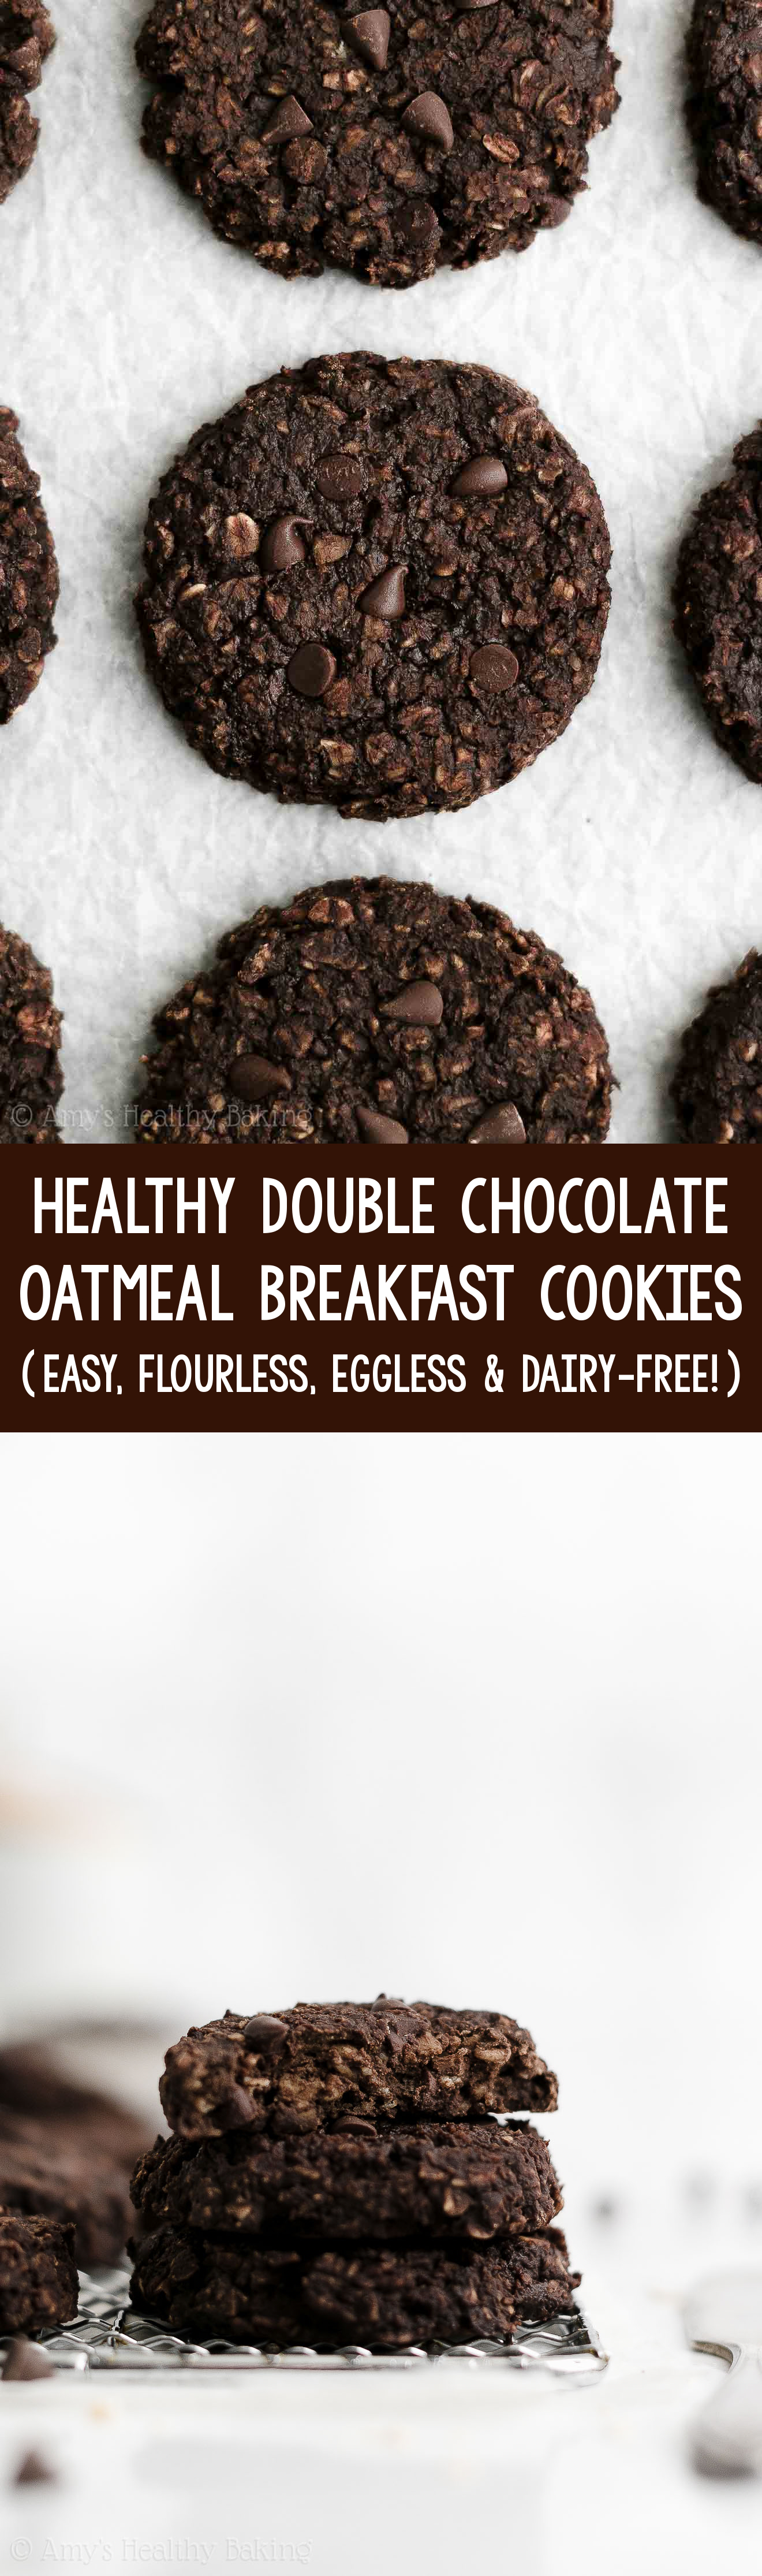 Best Easy Healthy Gluten Free Vegan Flourless Double Chocolate Oatmeal Breakfast Cookies For Kids